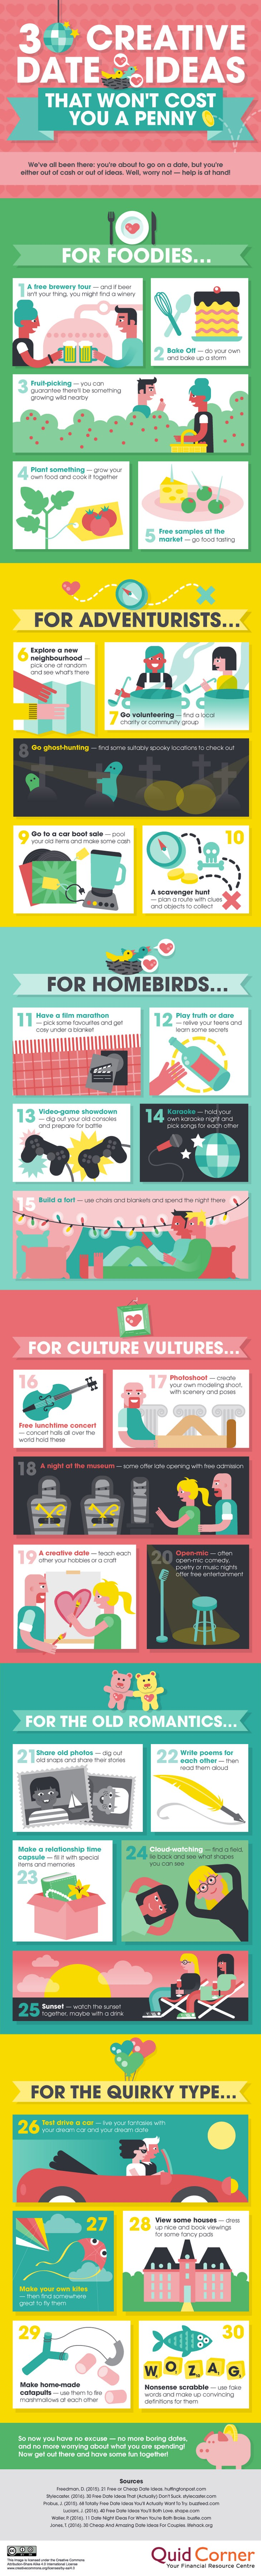 infographic, dating, fun, ideas, free